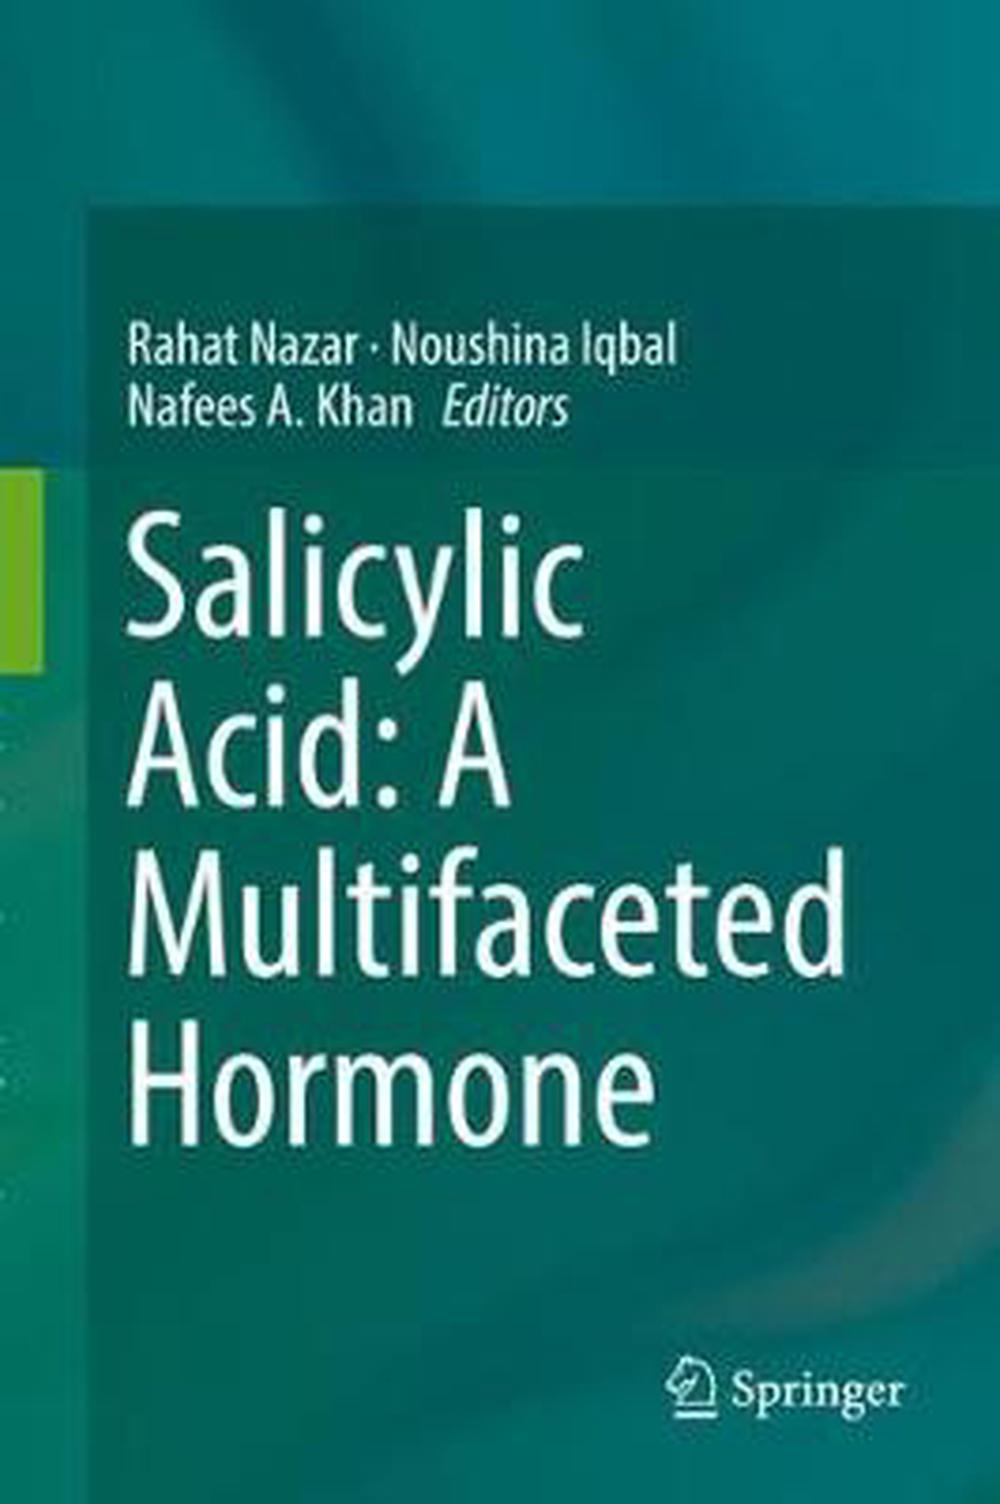 Salicylic Acid: a Multifaceted Hormone  Hardcover Book Free